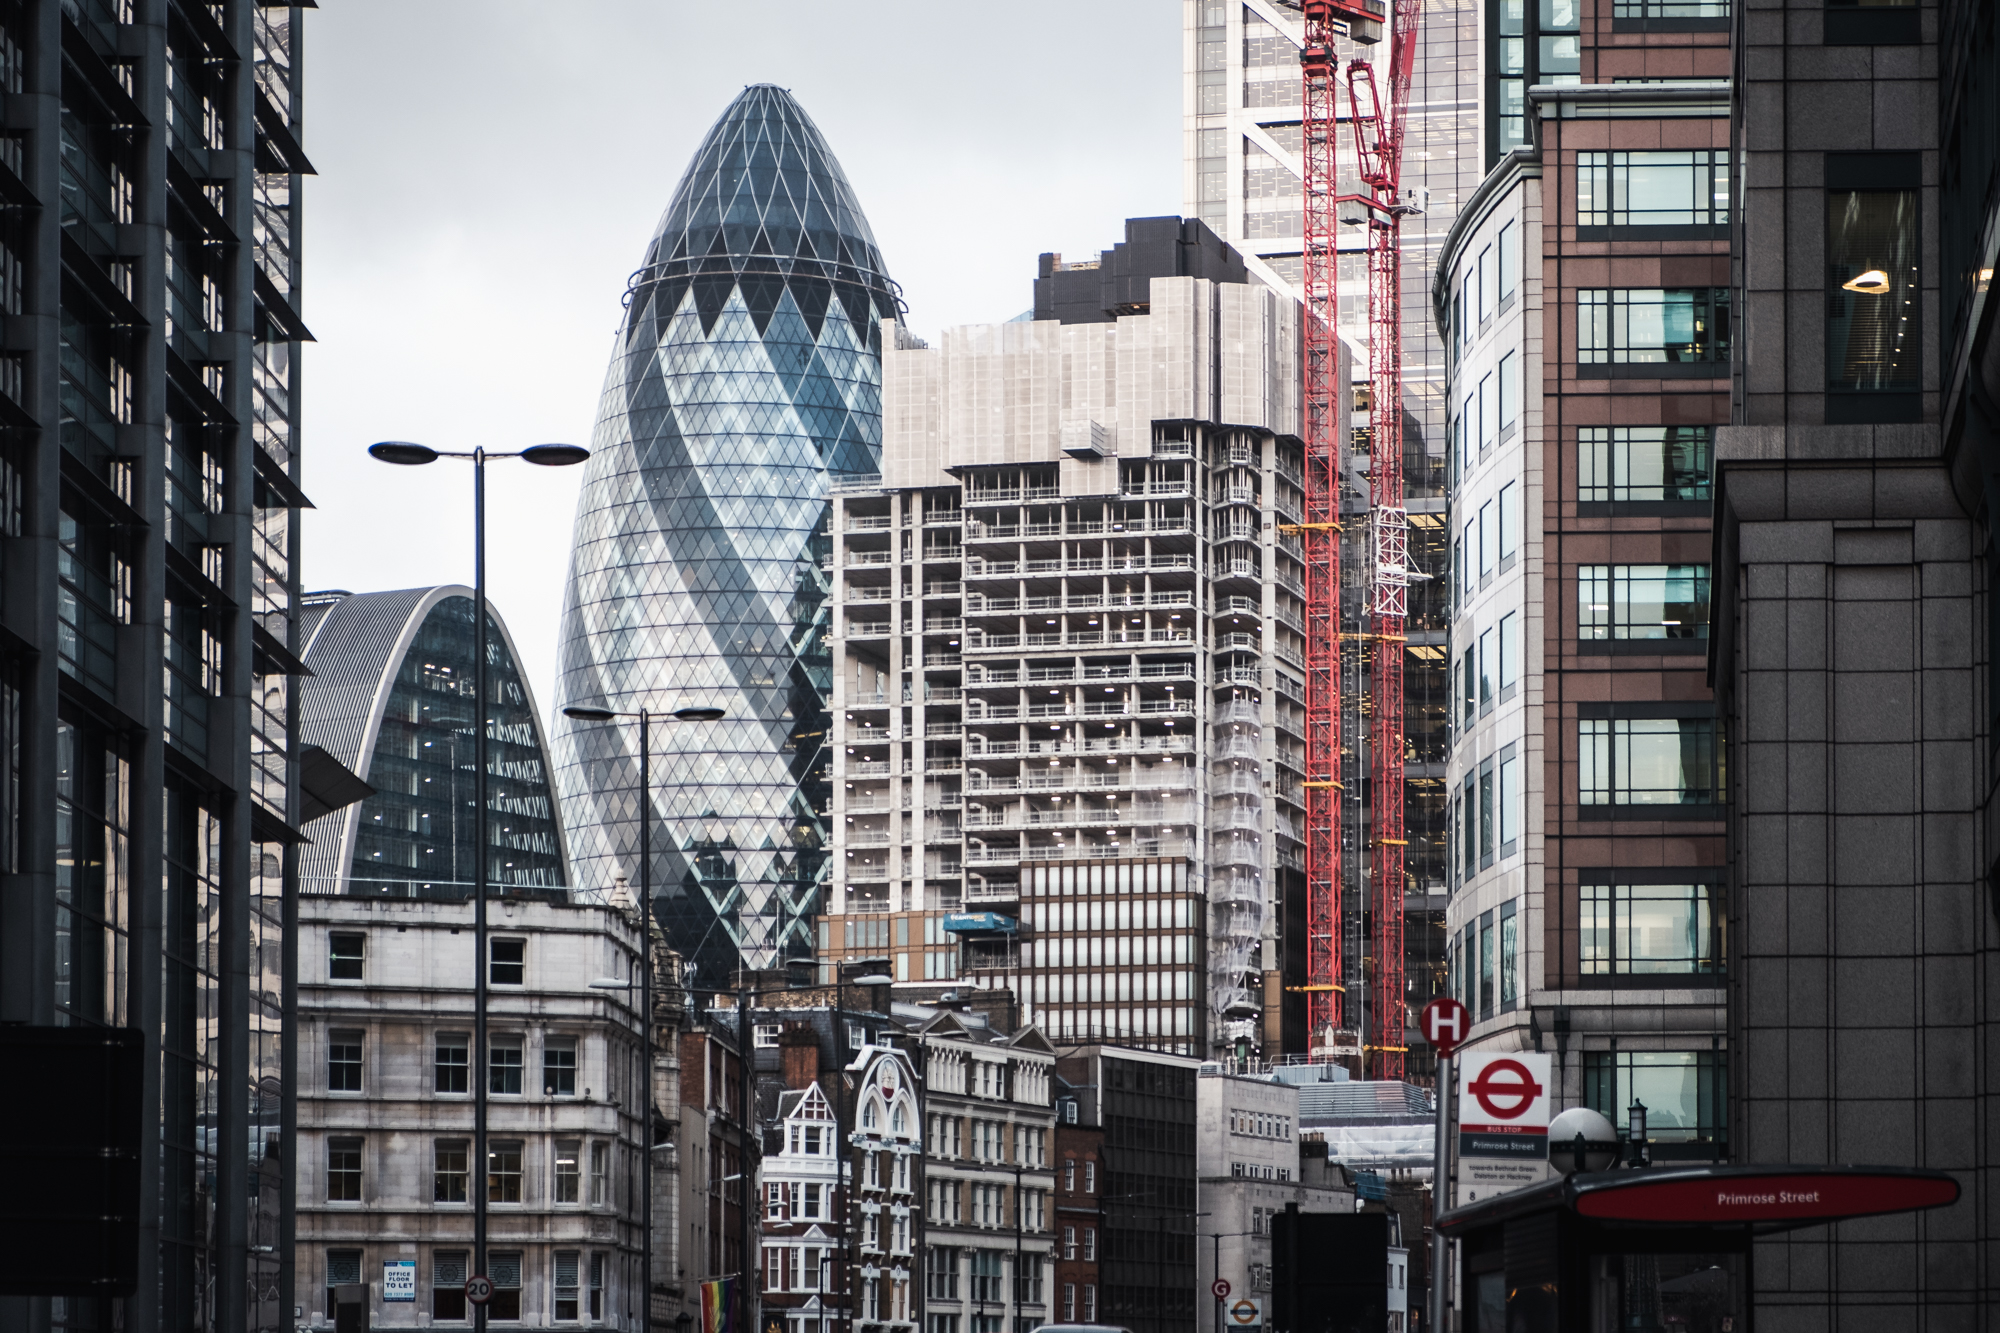 A photo of the Gherkin in the city of London by Trevor Sherwin Photography